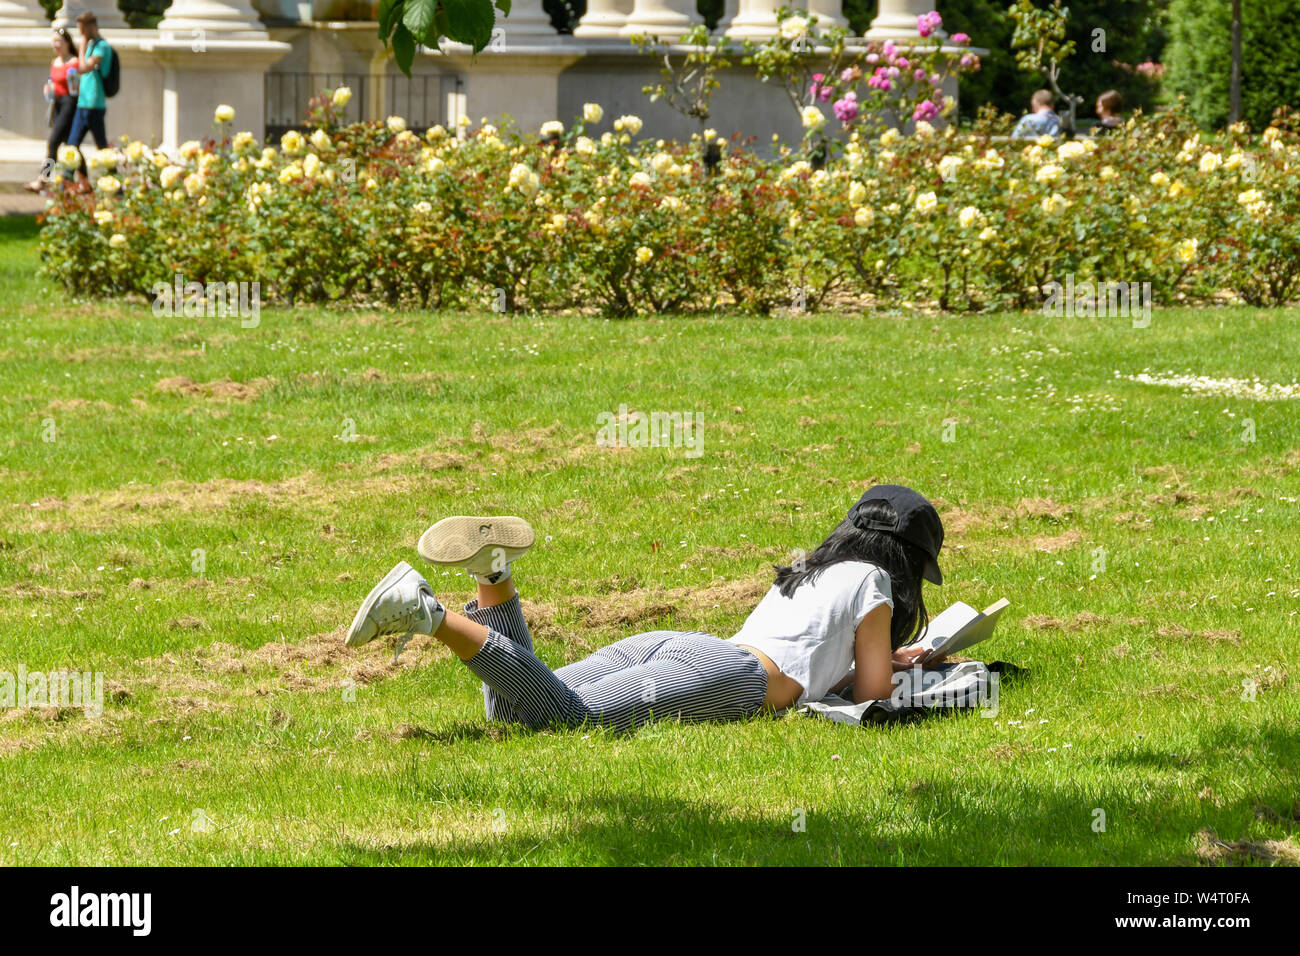 CARDIFF, WALES - JULY 2019: Student lying on grass in a public park in Cardiff reading a book . Stock Photo